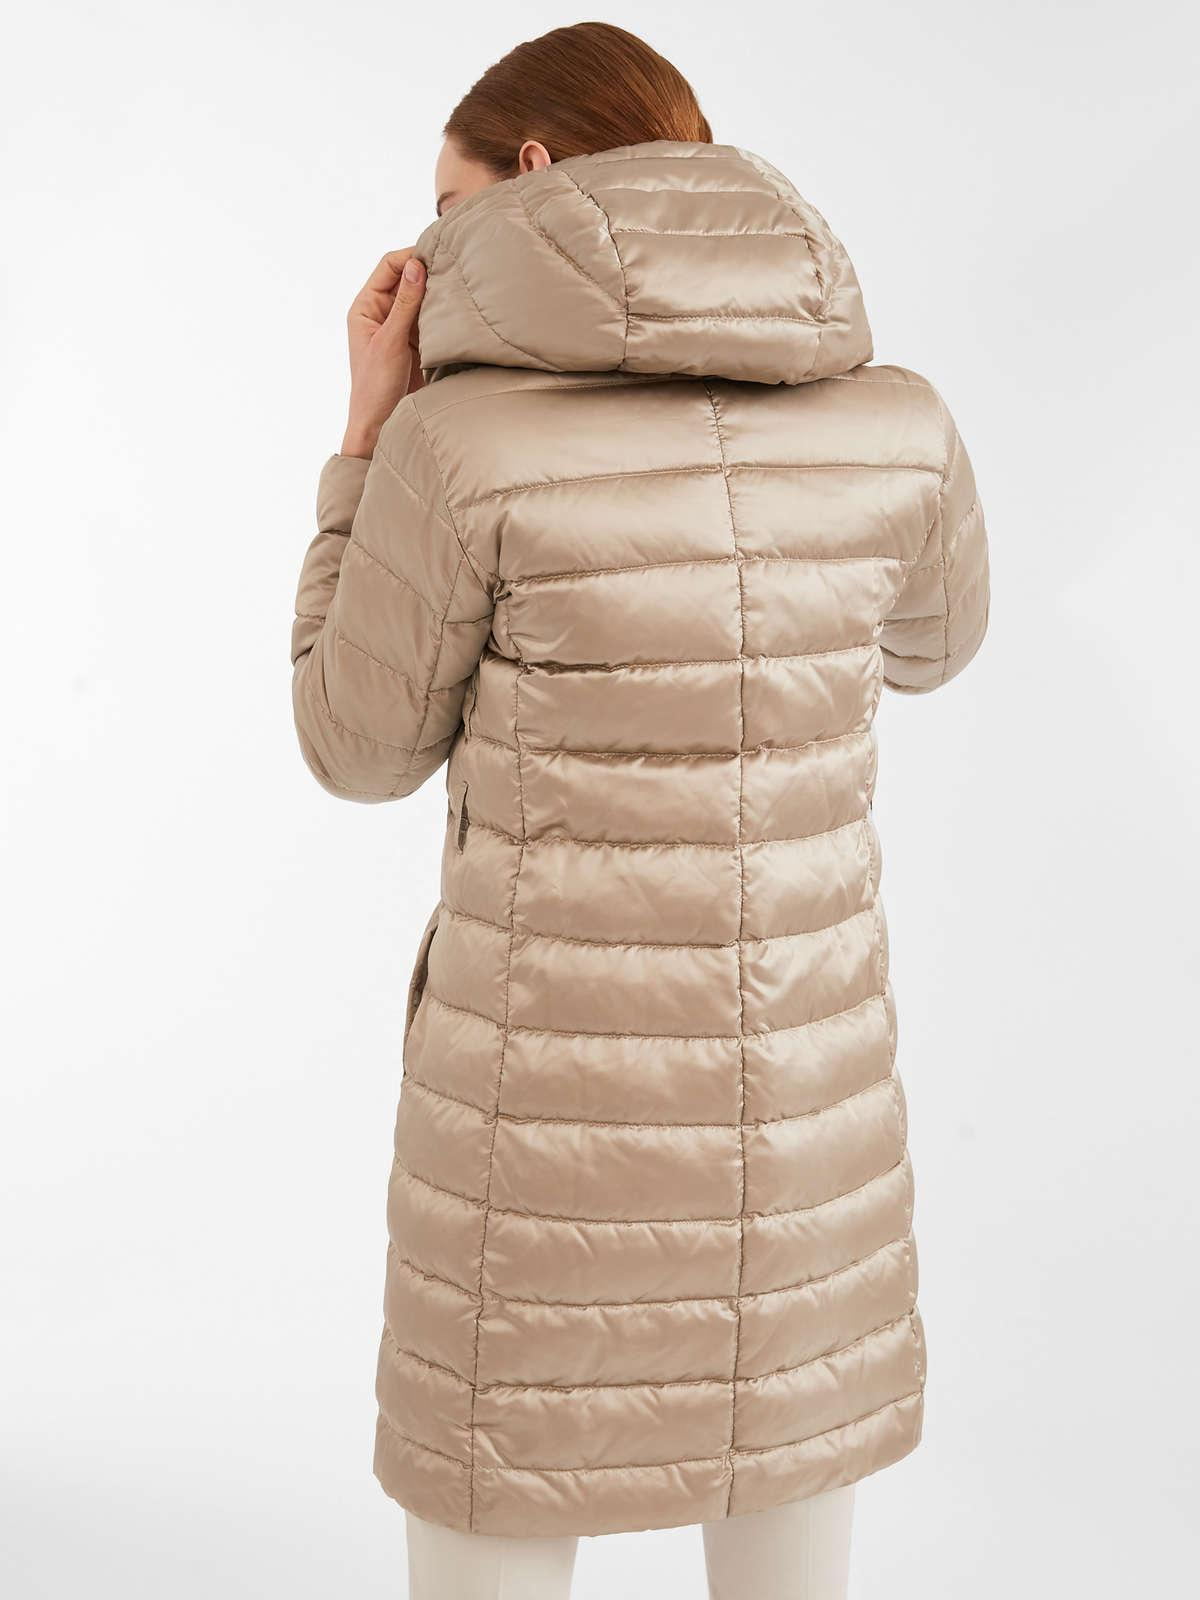 Womens Max Mara Padded Coats | Reversible Down Jacket In Water-Resistant Satin Ice